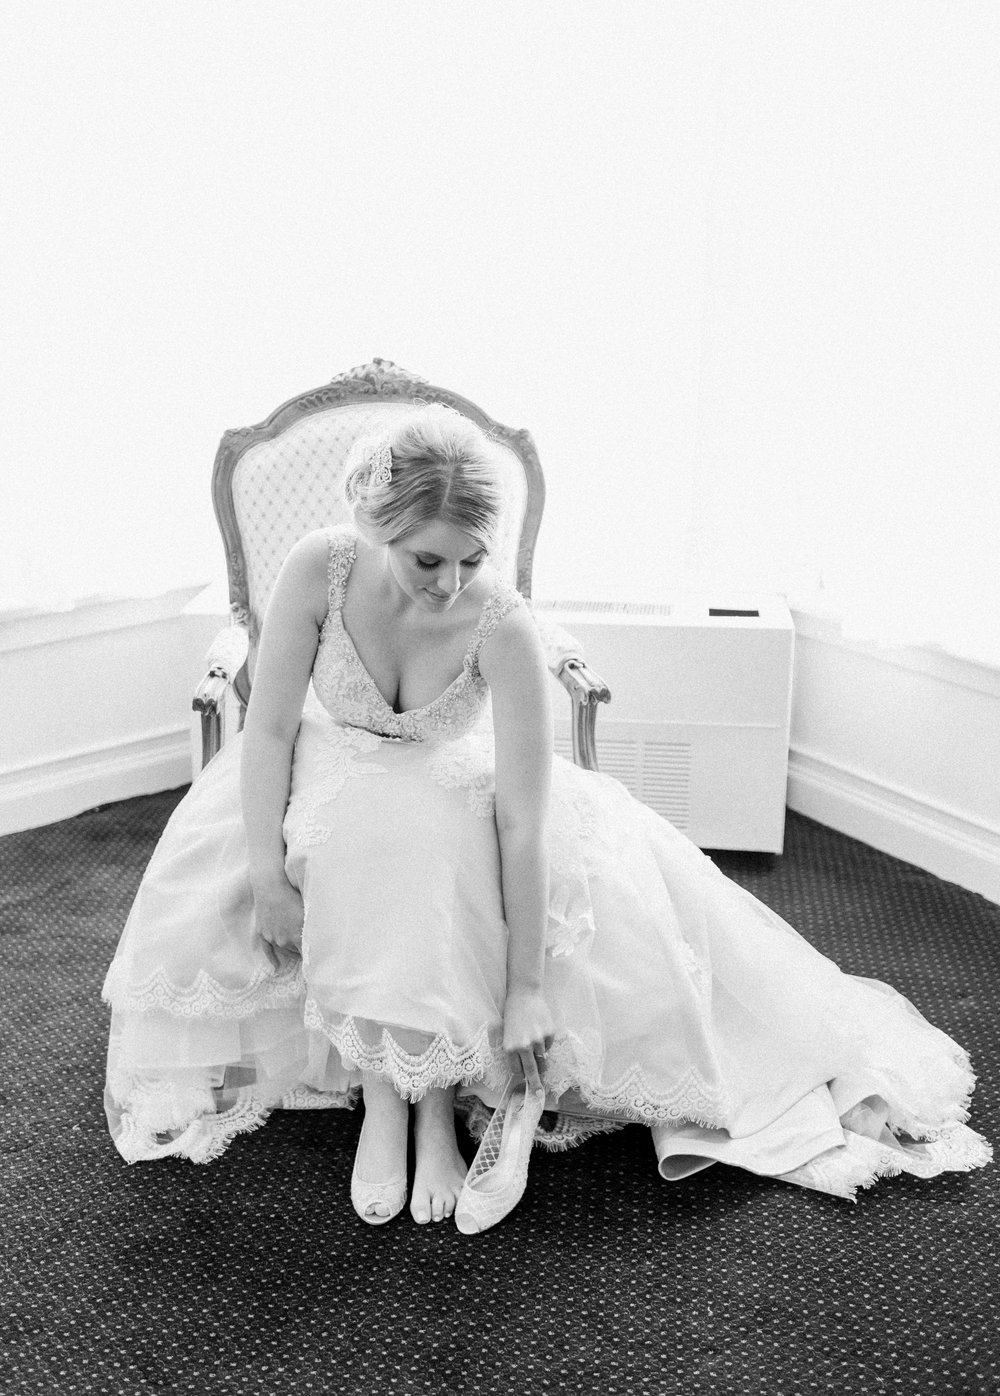 www.bonphotage.com Bonphotage Wedding Photographer